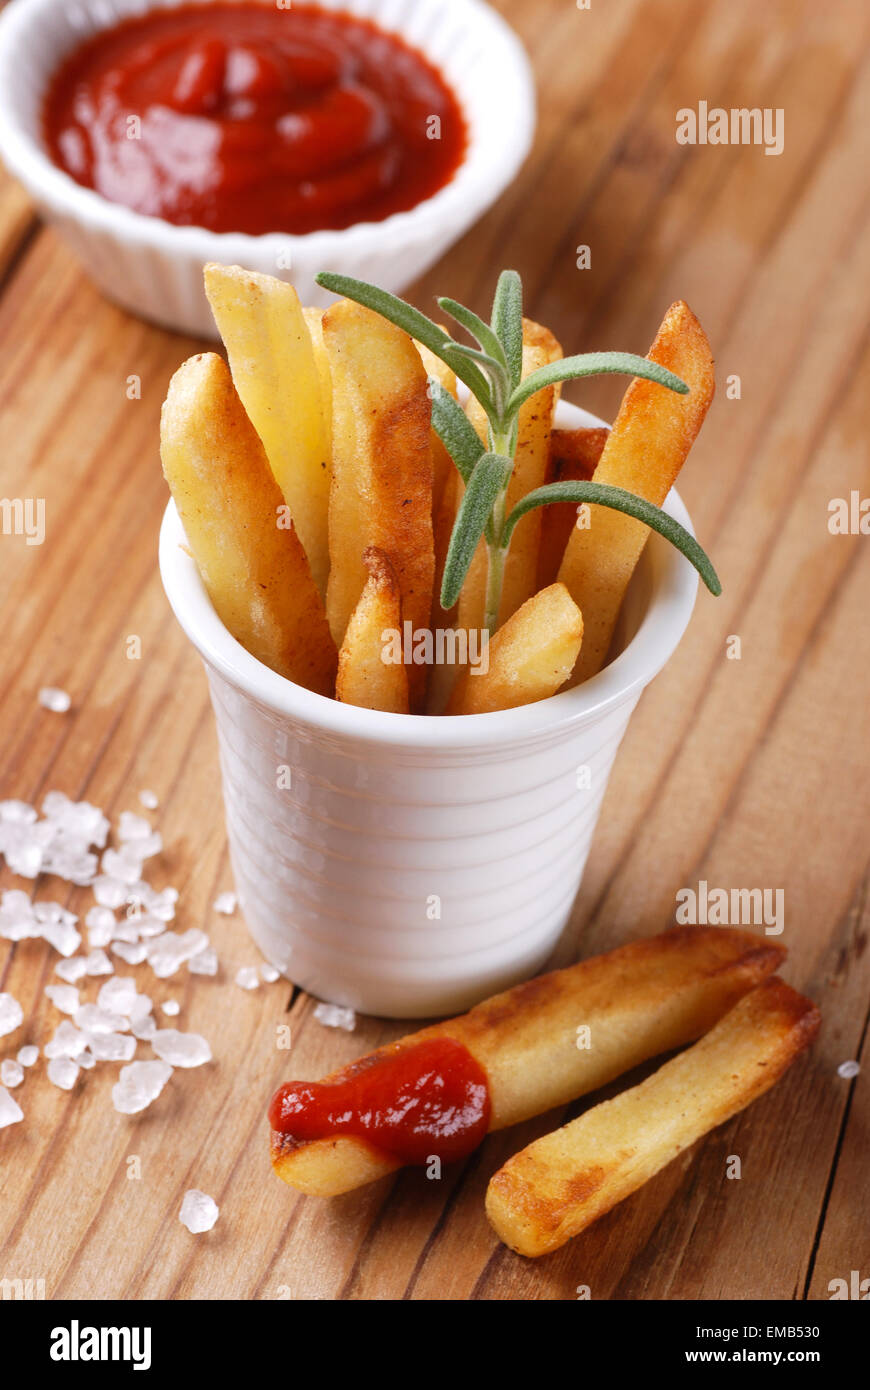 portion of french fries with ketchup - Stock Image